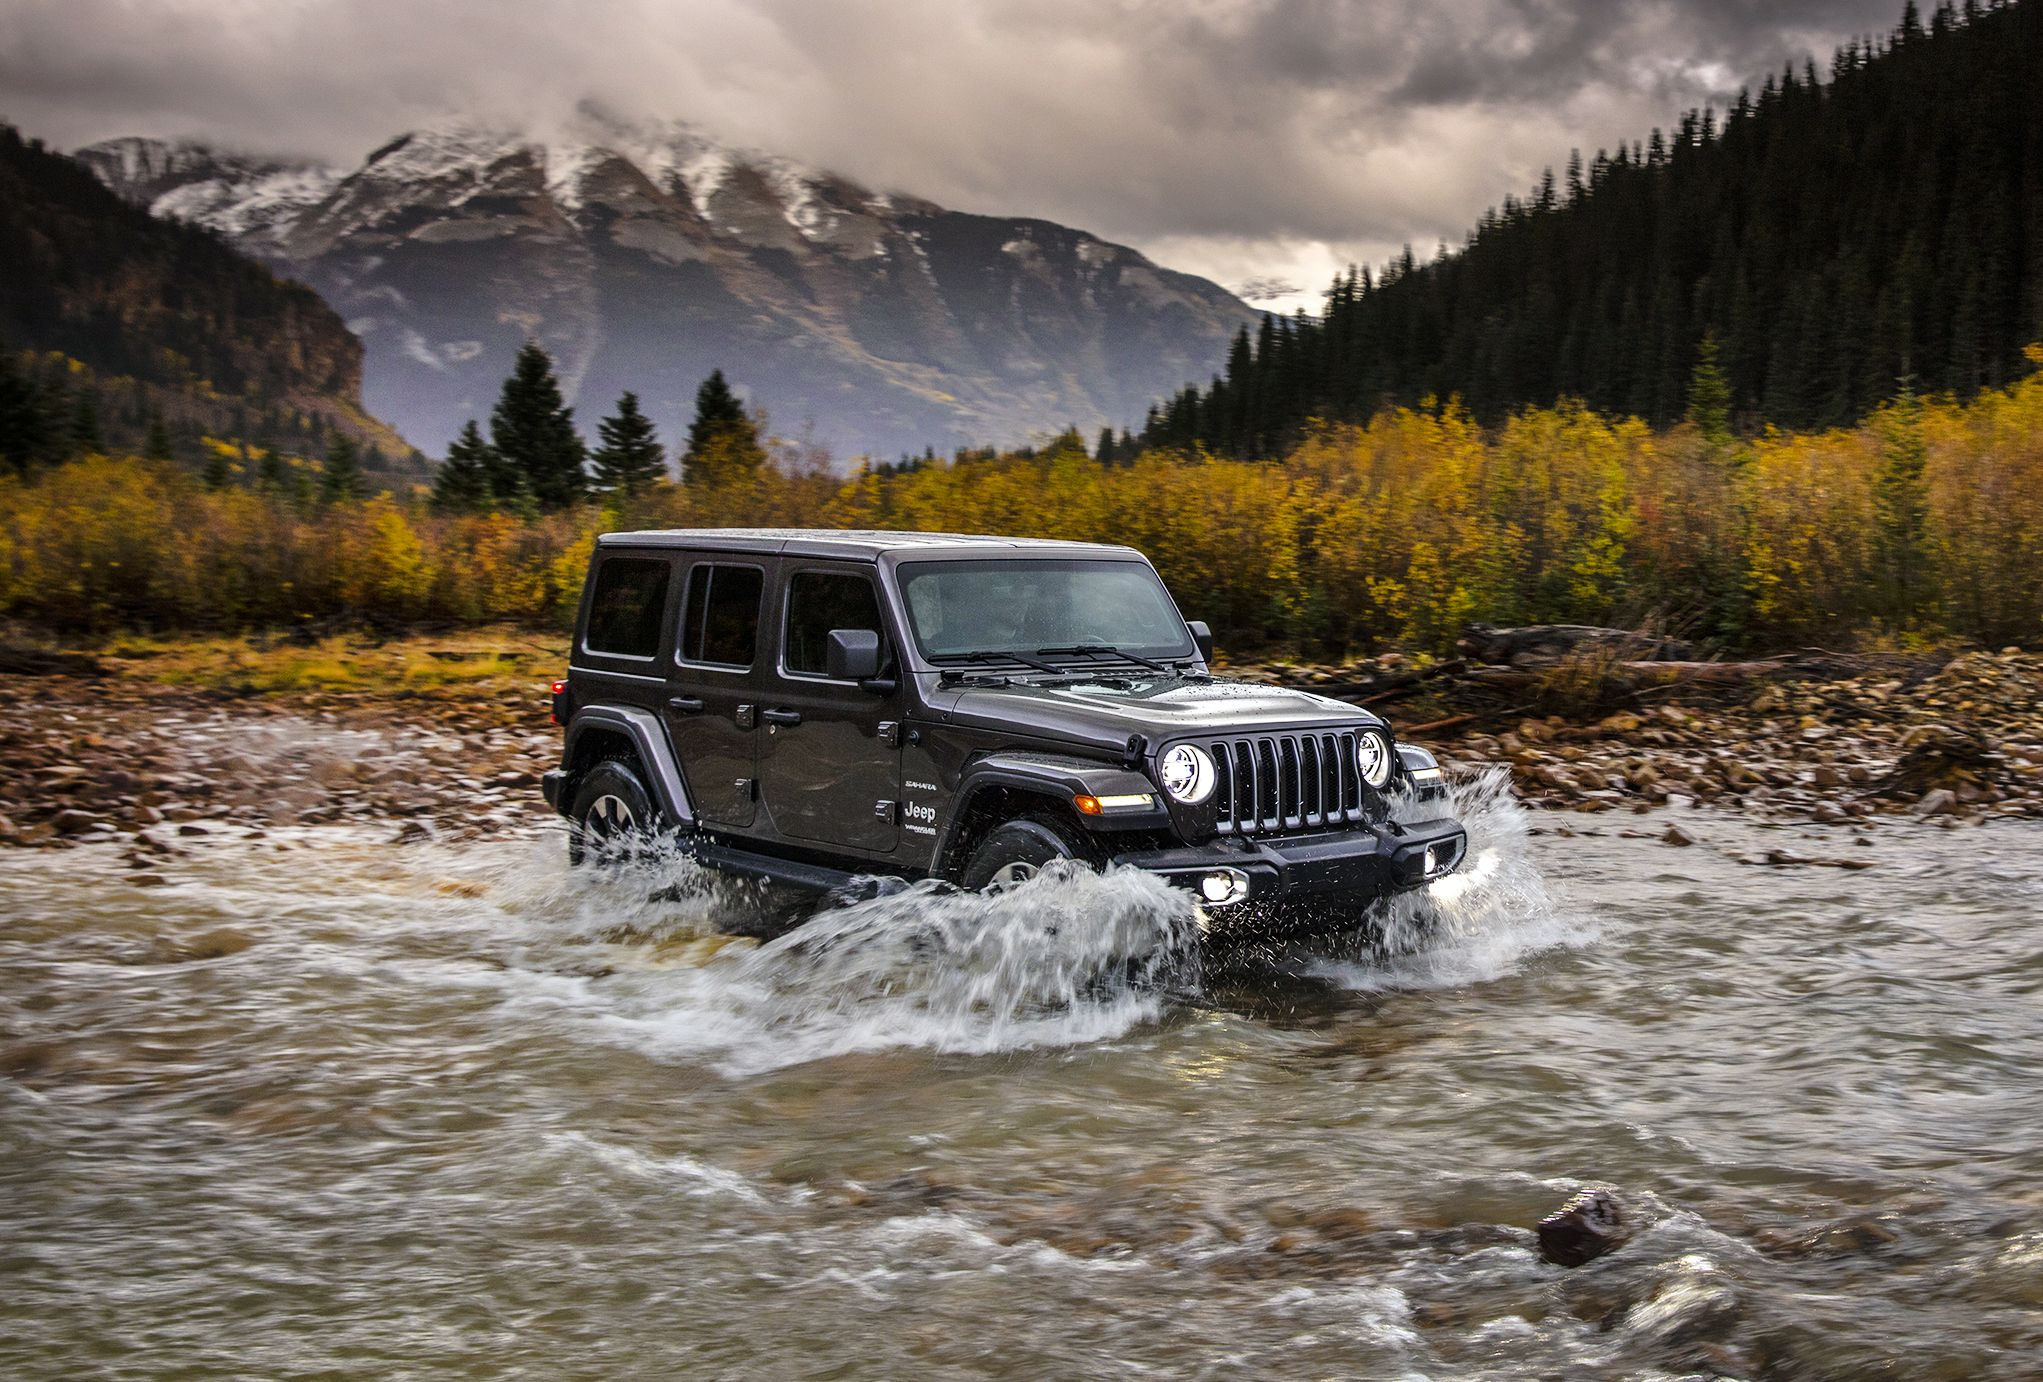 Jeep Wrangler Unlimited Sahara water fording